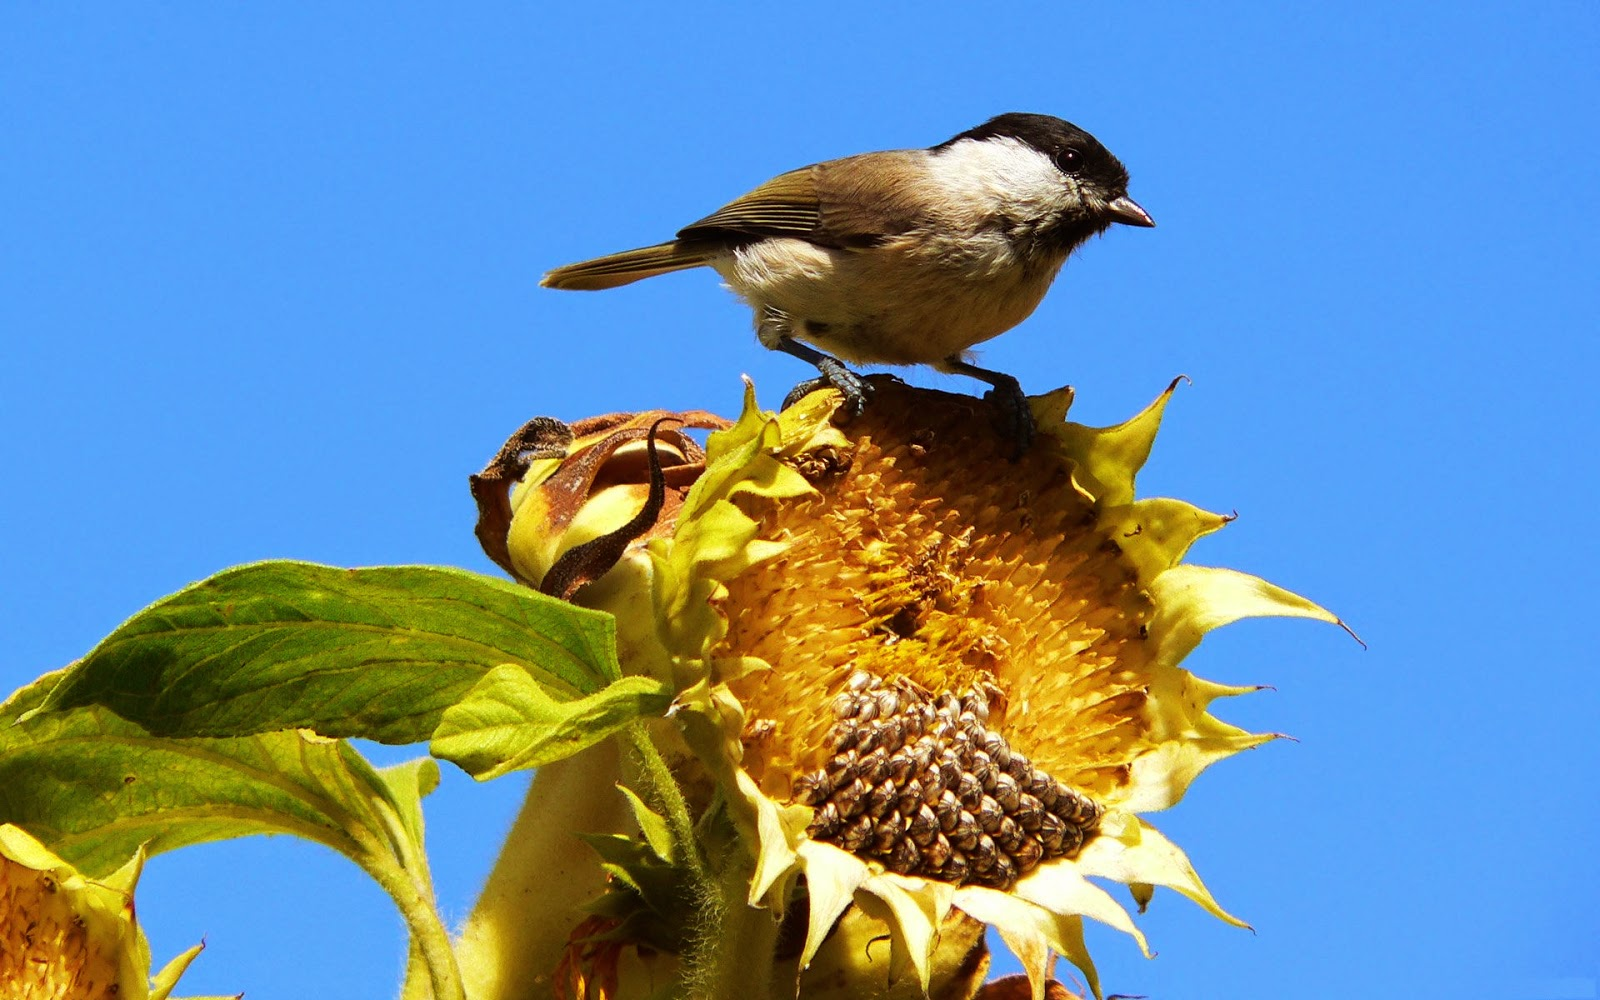 Bird Eating from a Sunflower